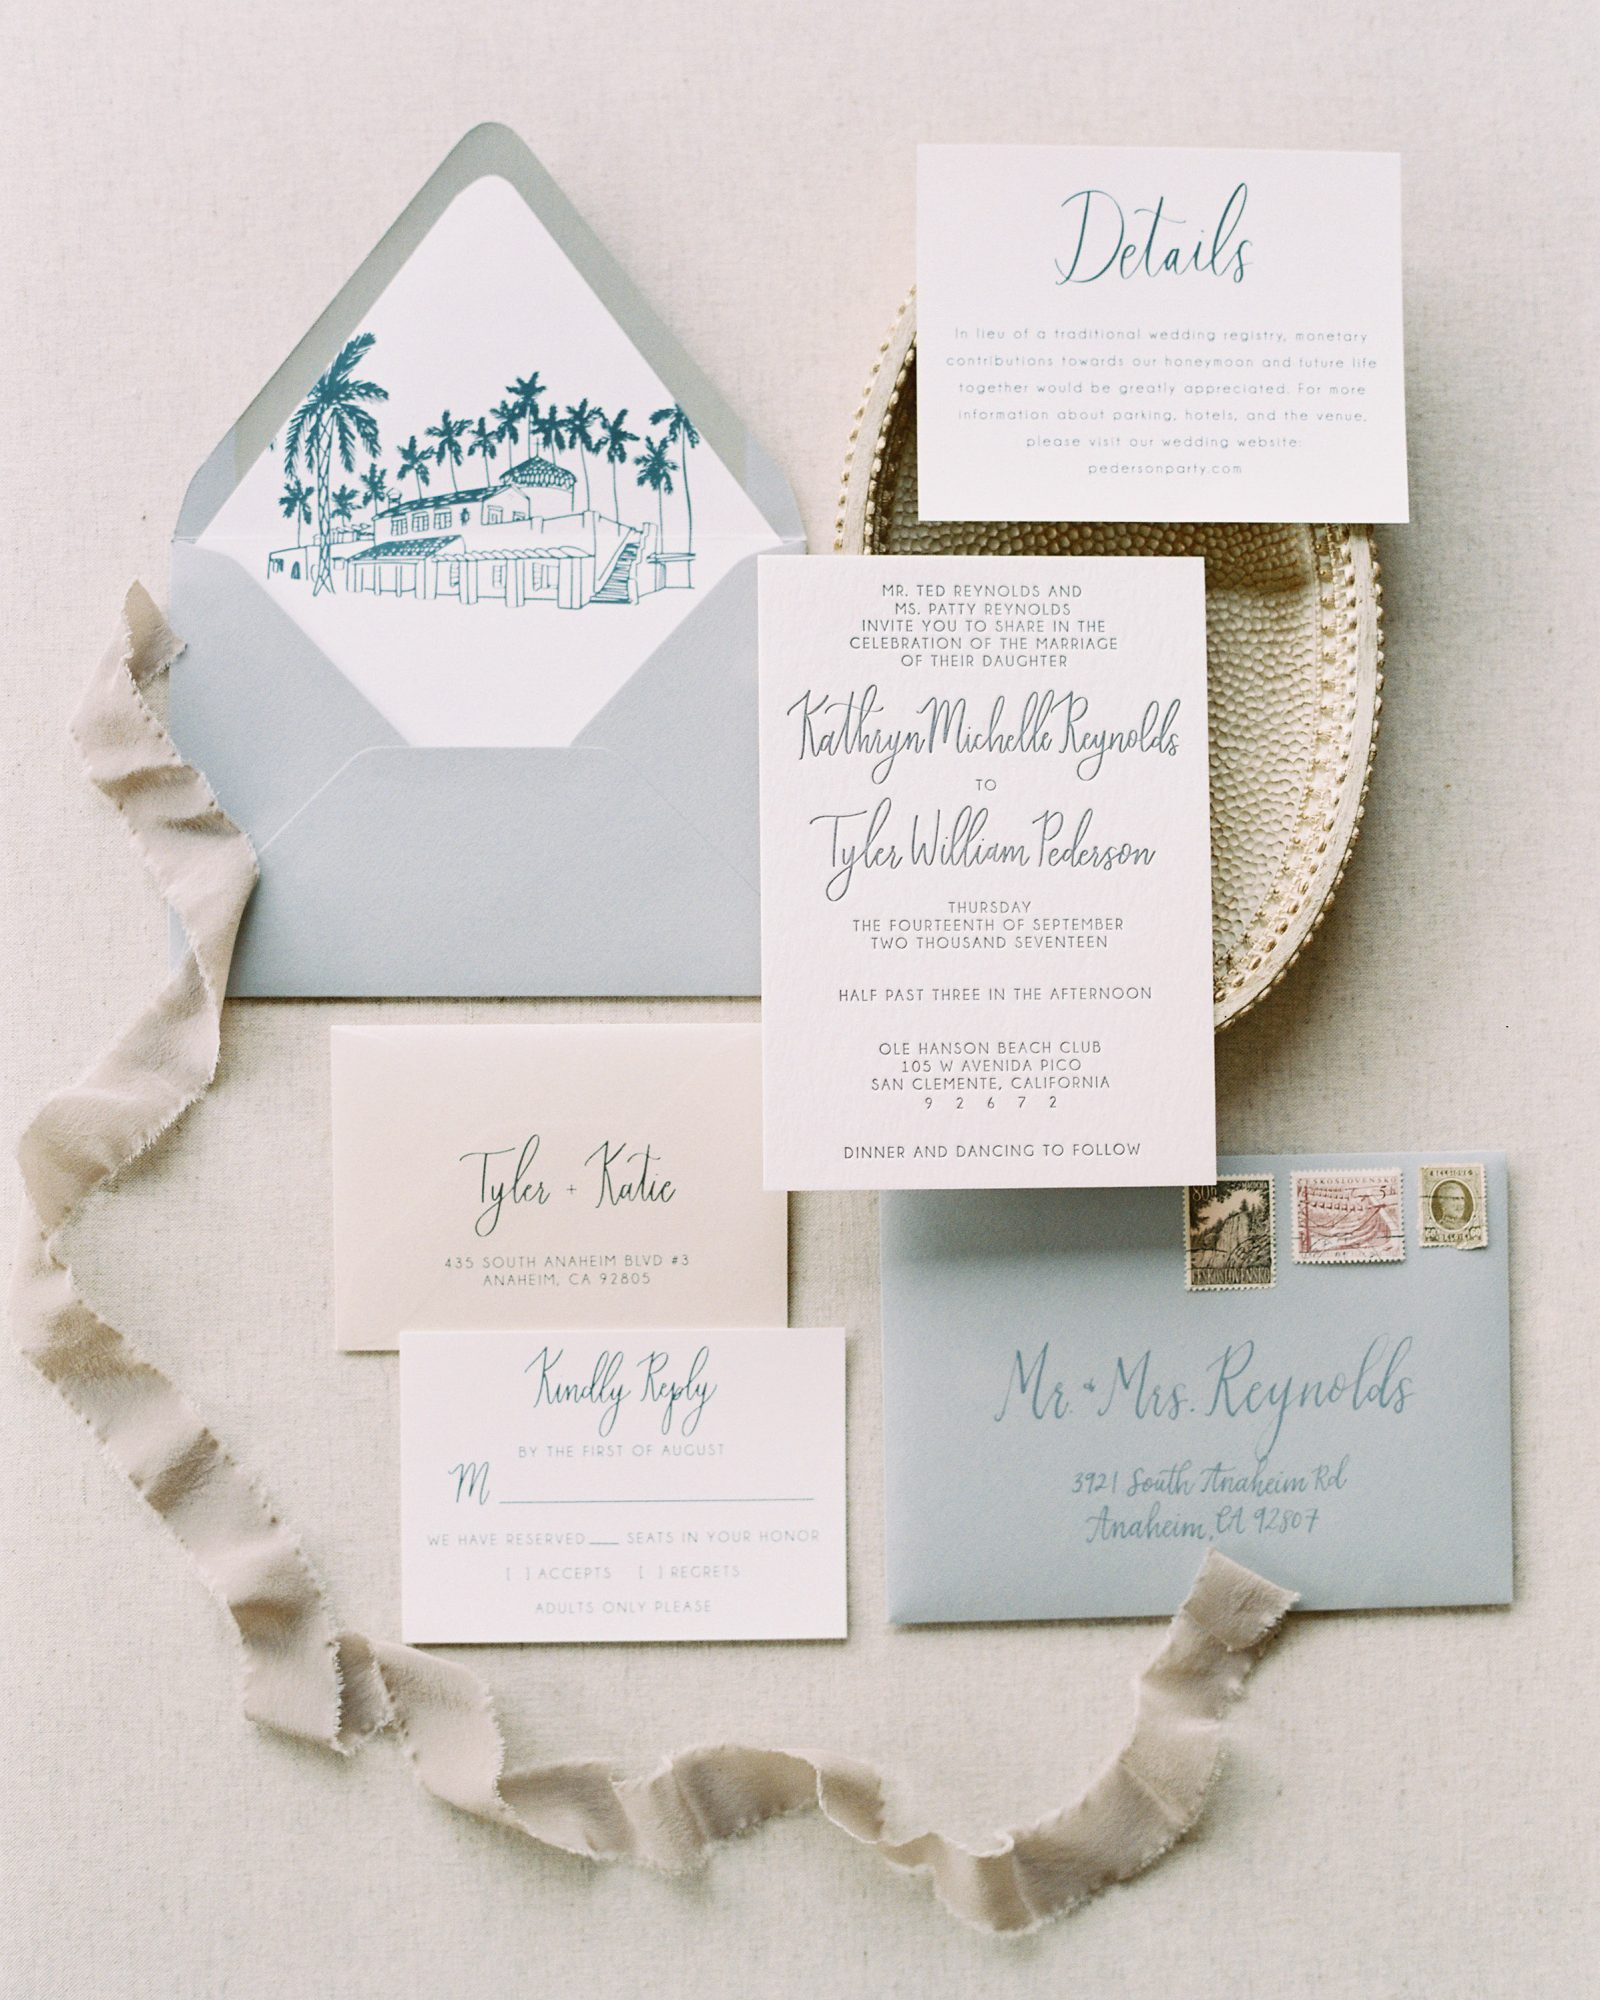 Pirouette Paper used two sea-inspired hues—light blue and a sandy brown—for this California beach club wedding's invitations.